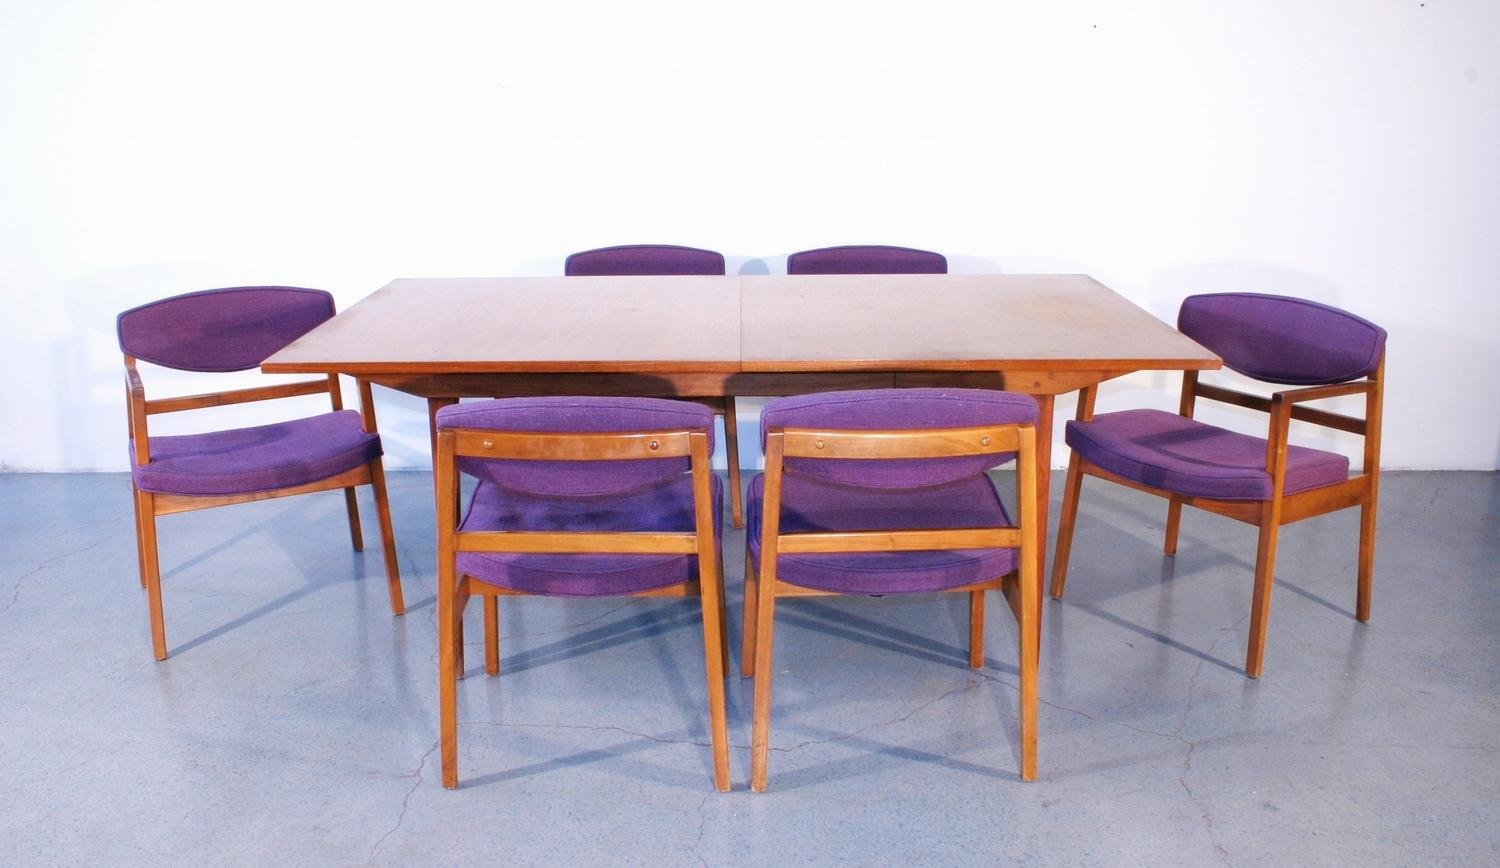 George nelson for herman miller dining table with chairs